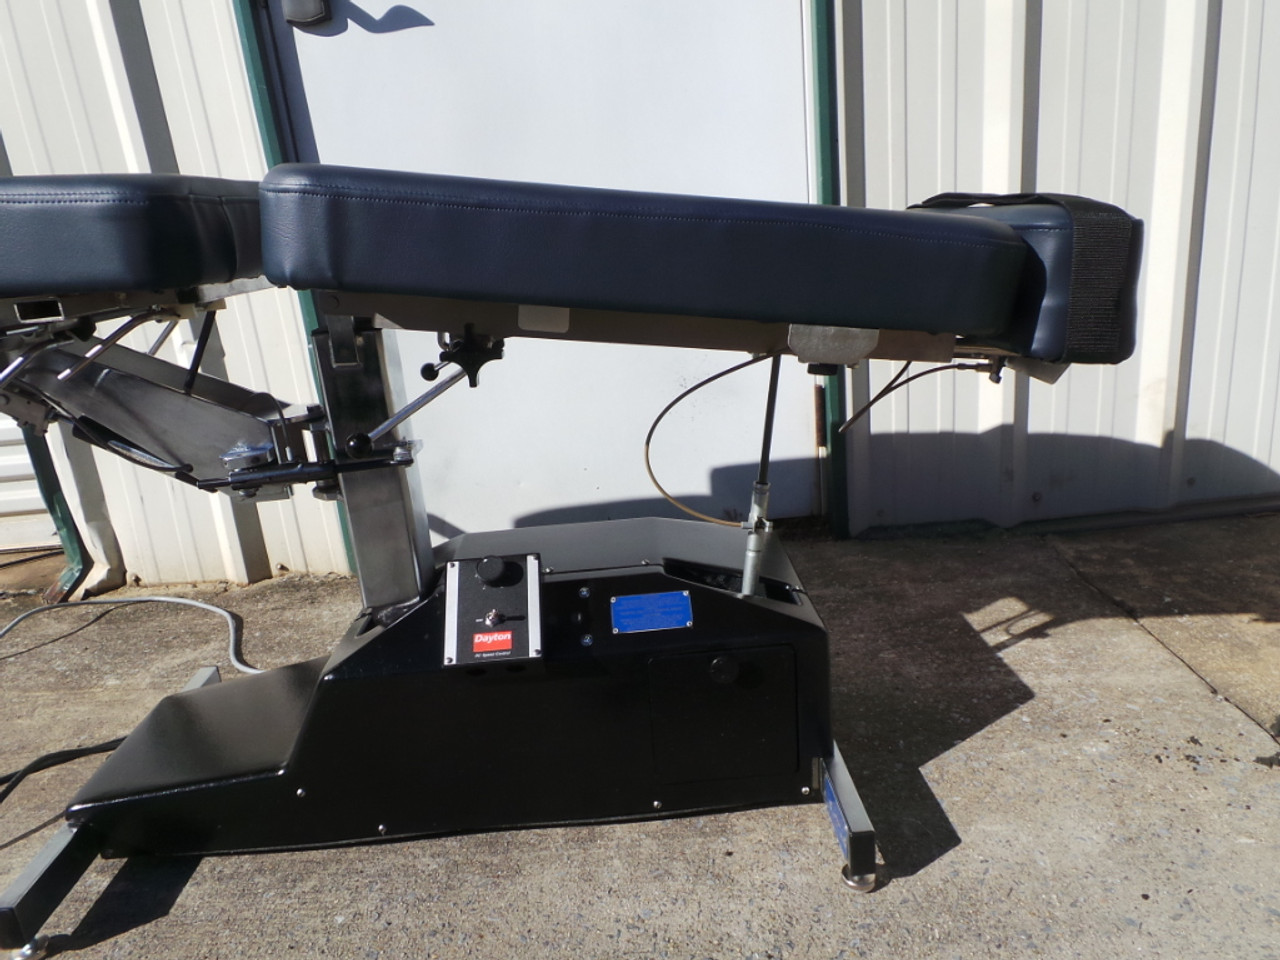 Used Leander Elevation Auto Flexion Table Variable speed control box